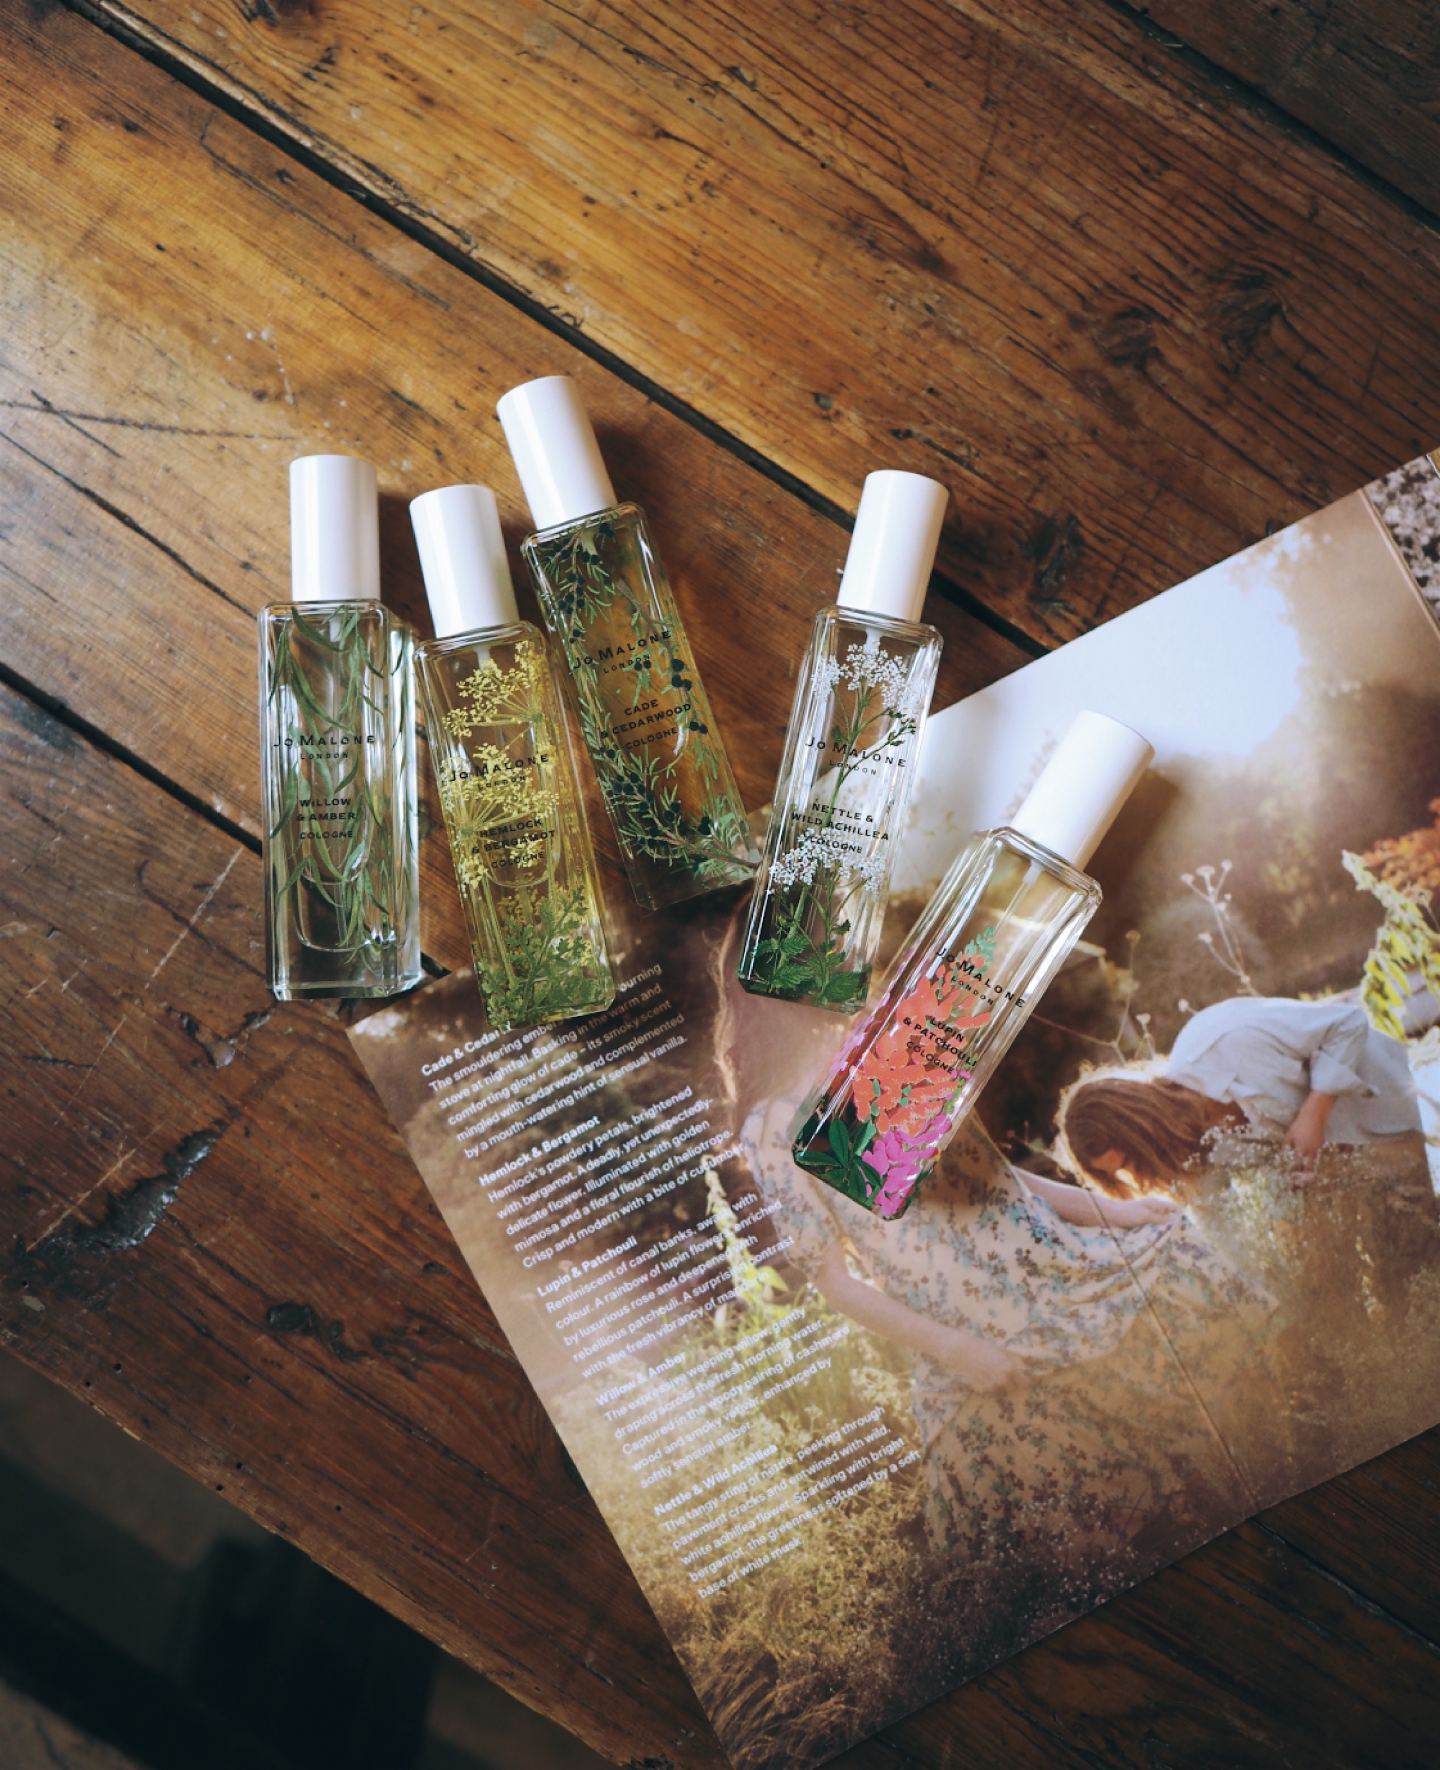 Jo Malone London 'Wild flowers & Weeds' Collection flatlay new perfume 2019